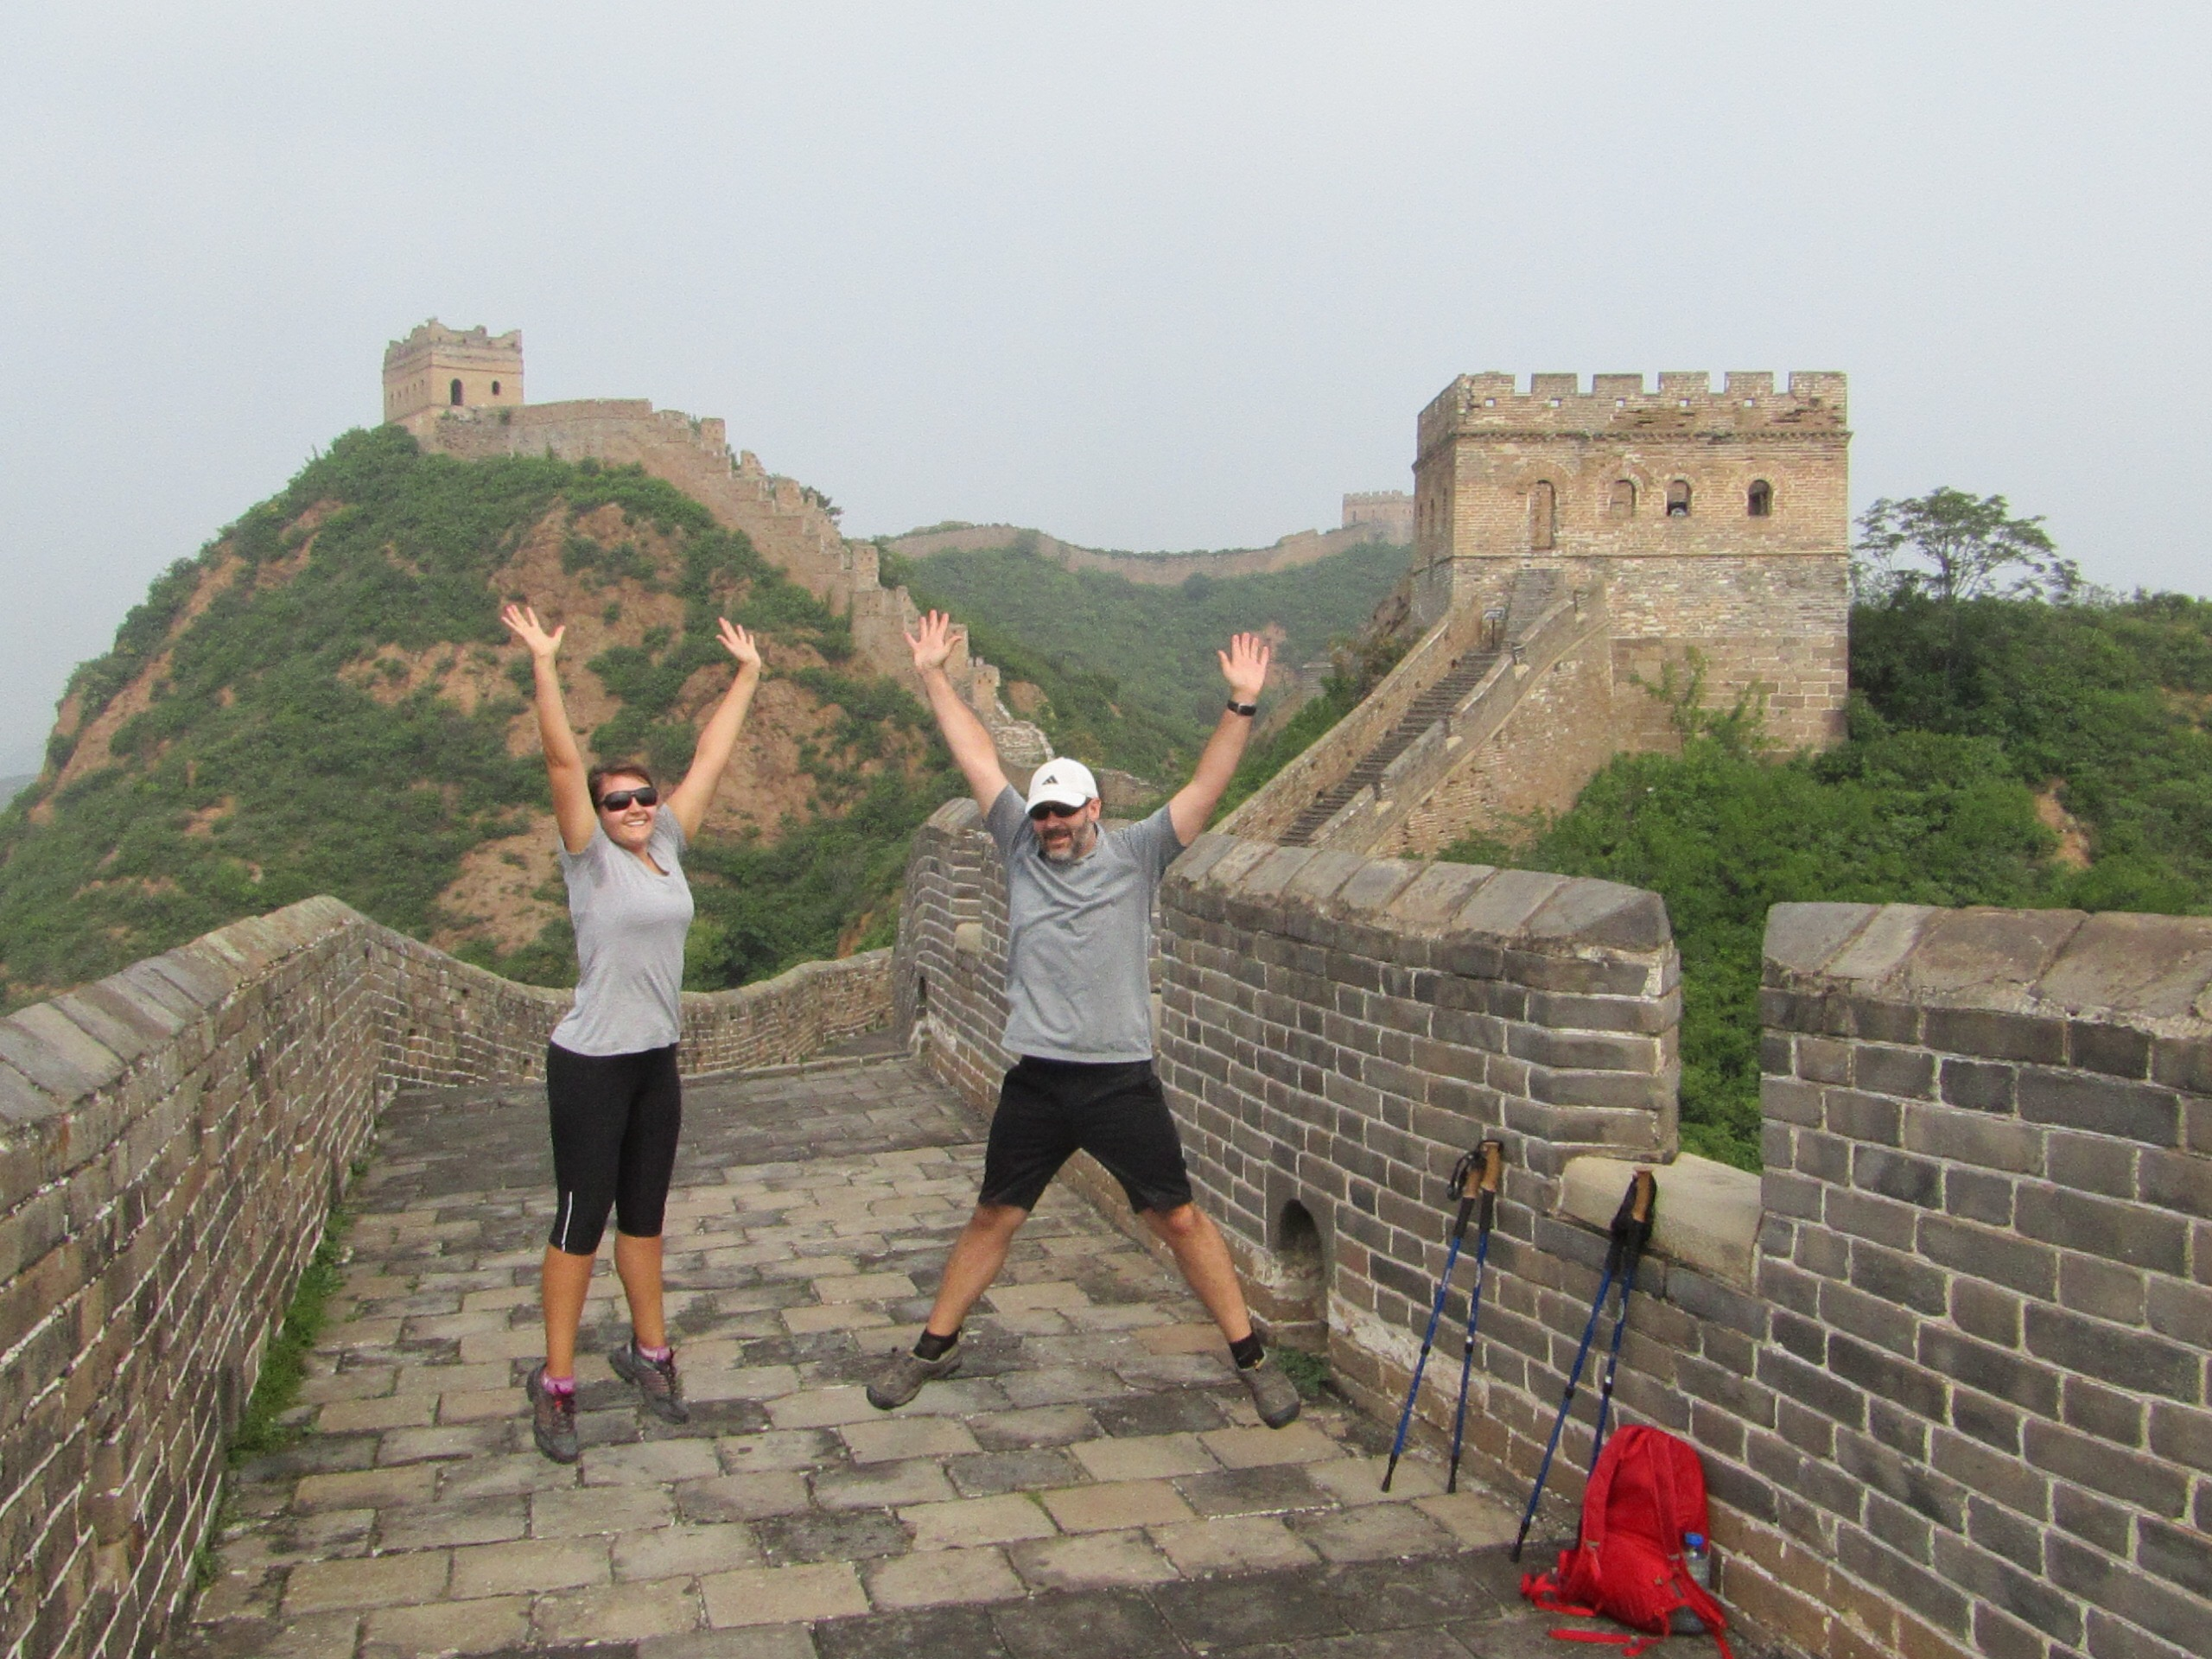 Full of energy at the start of the day (around 9 a.m.) and jumping for joy at the prospect of a day walking the Wall.